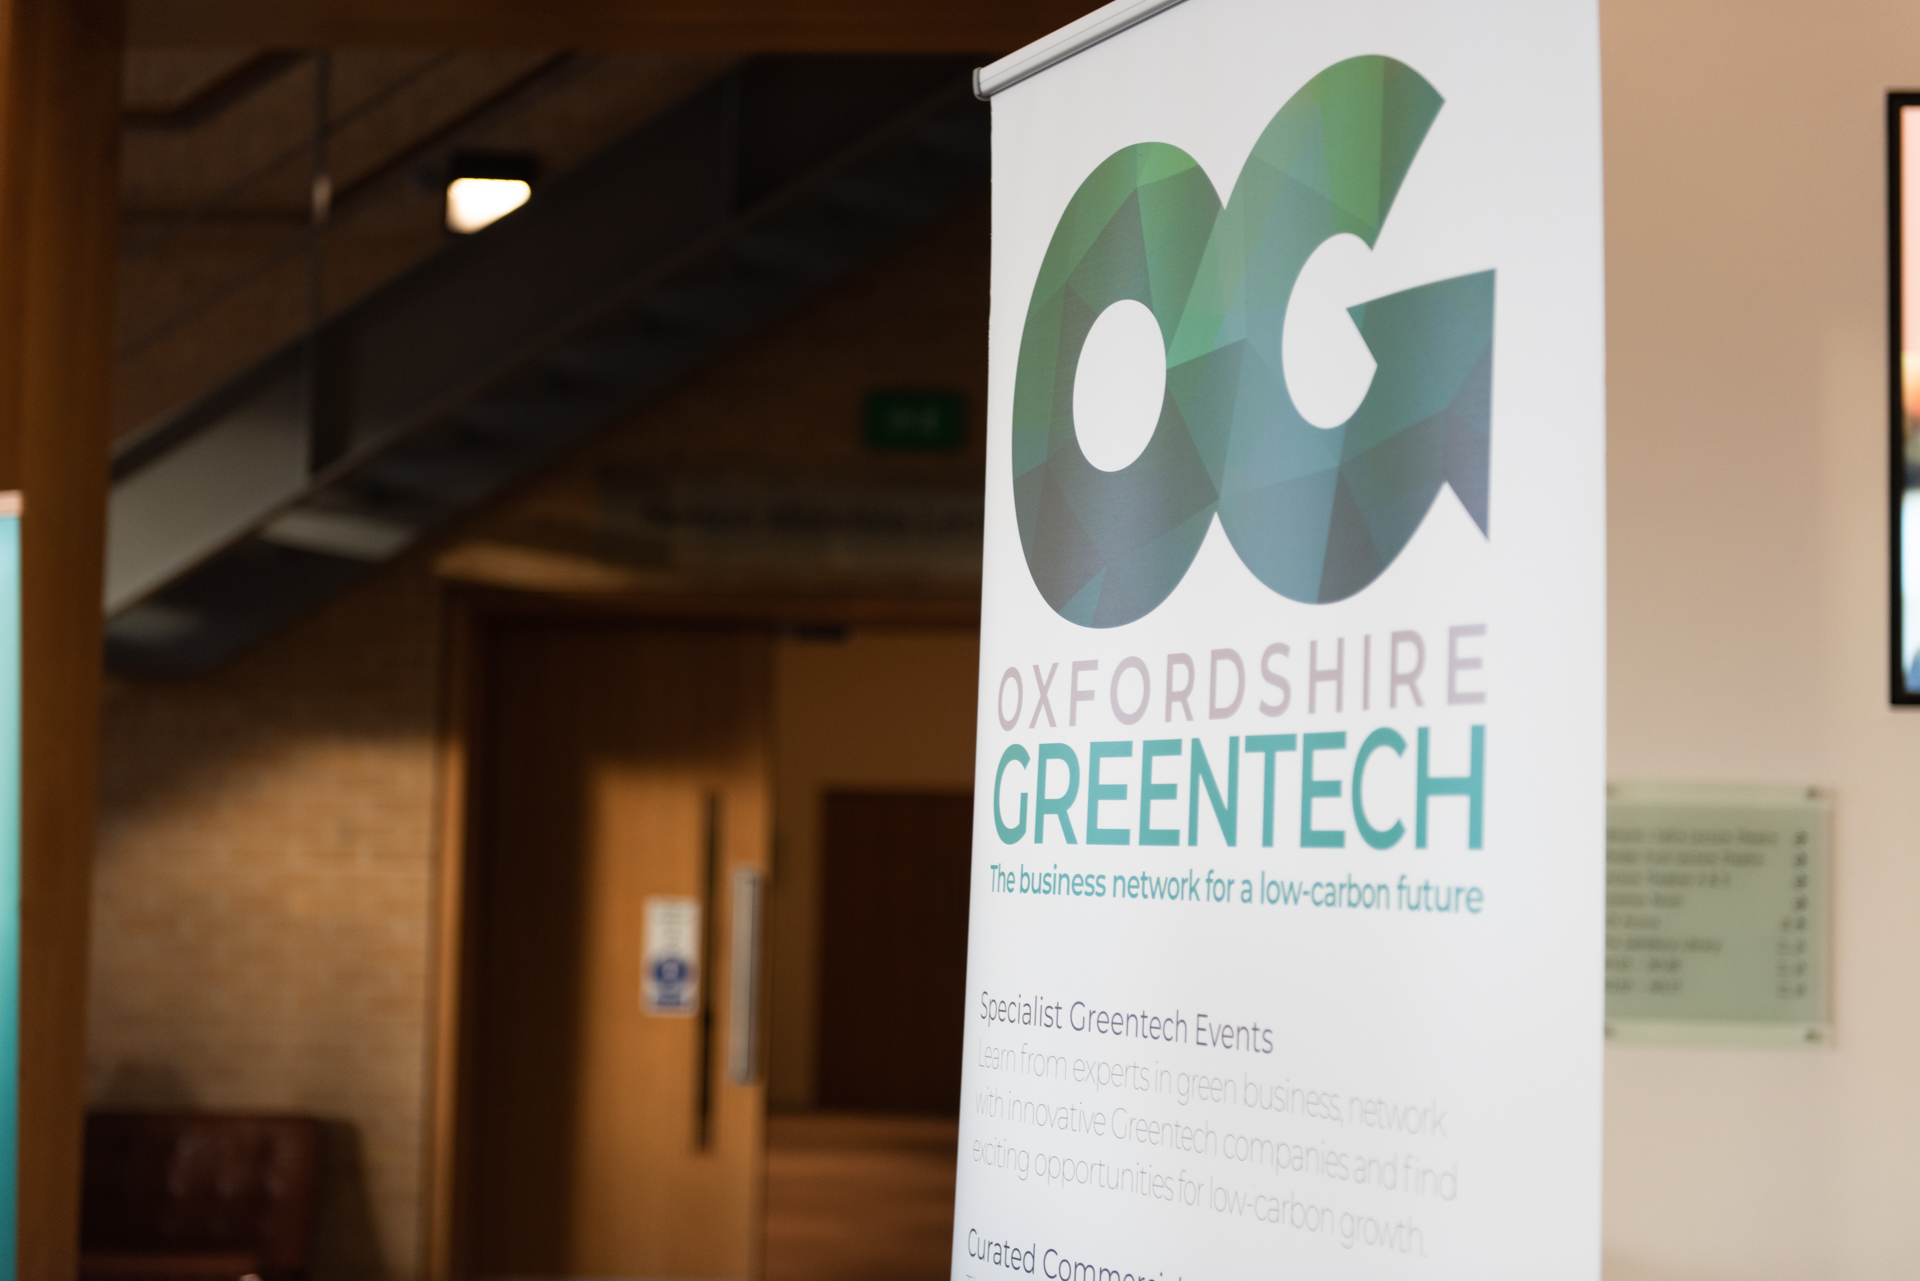 Oxford_GreenTech-21